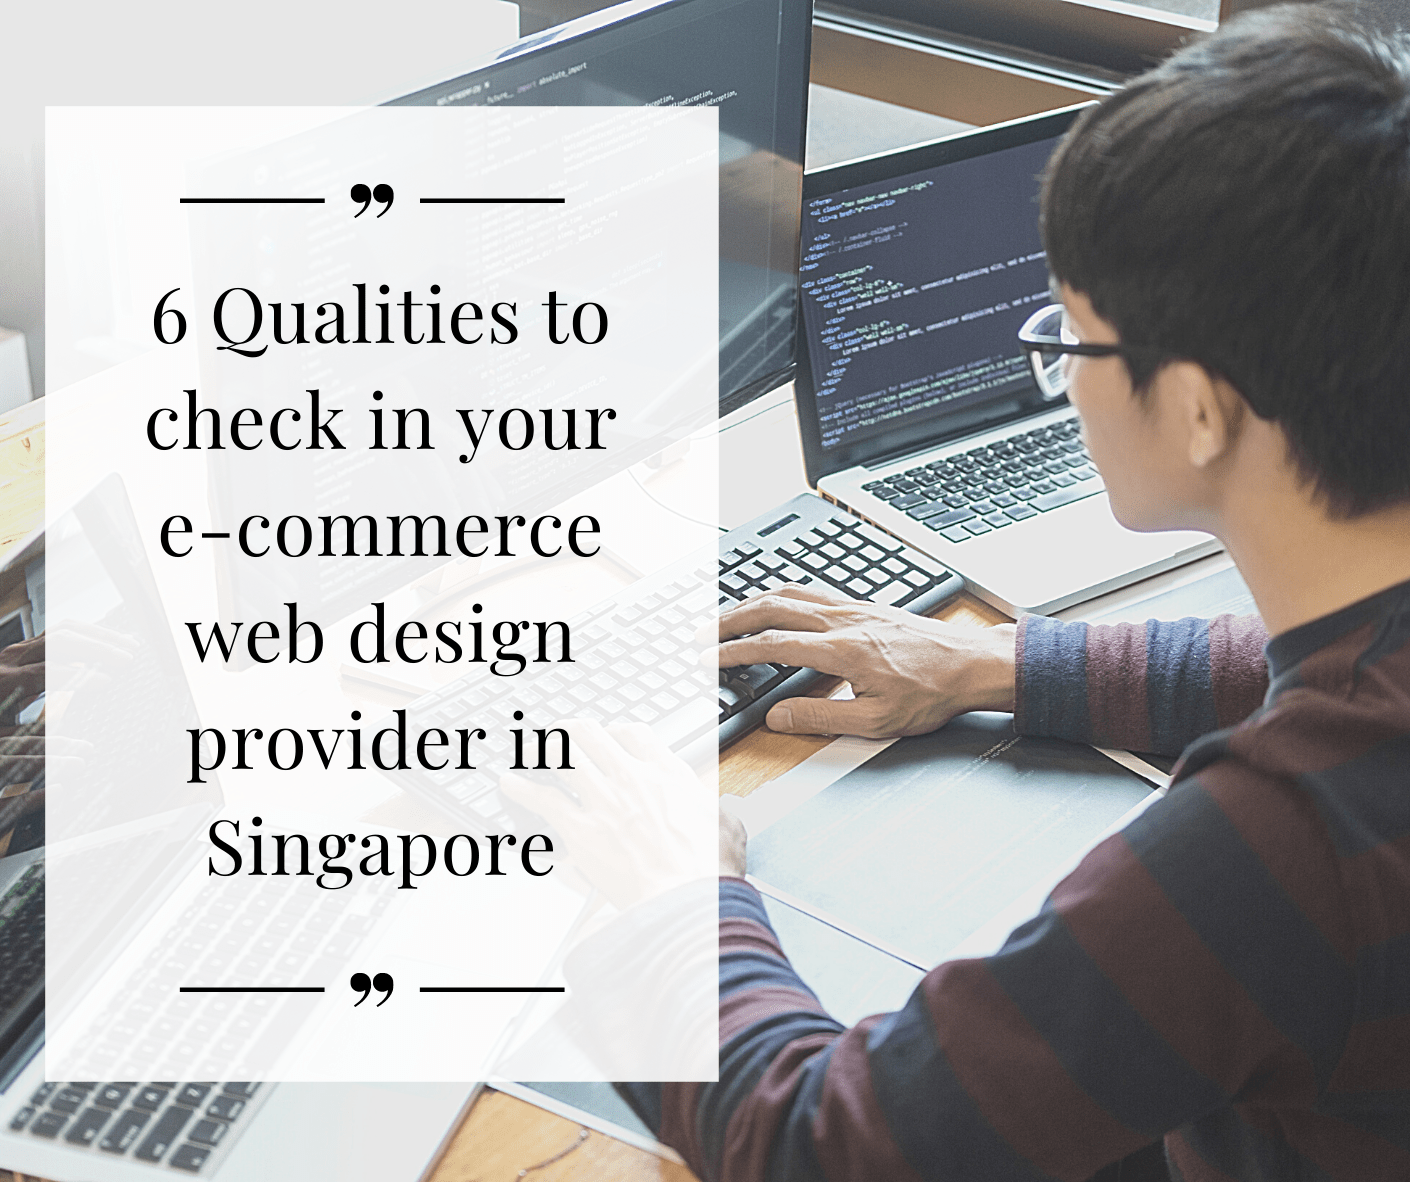 6 Qualities to check in your e-commerce web design provider in Singapore